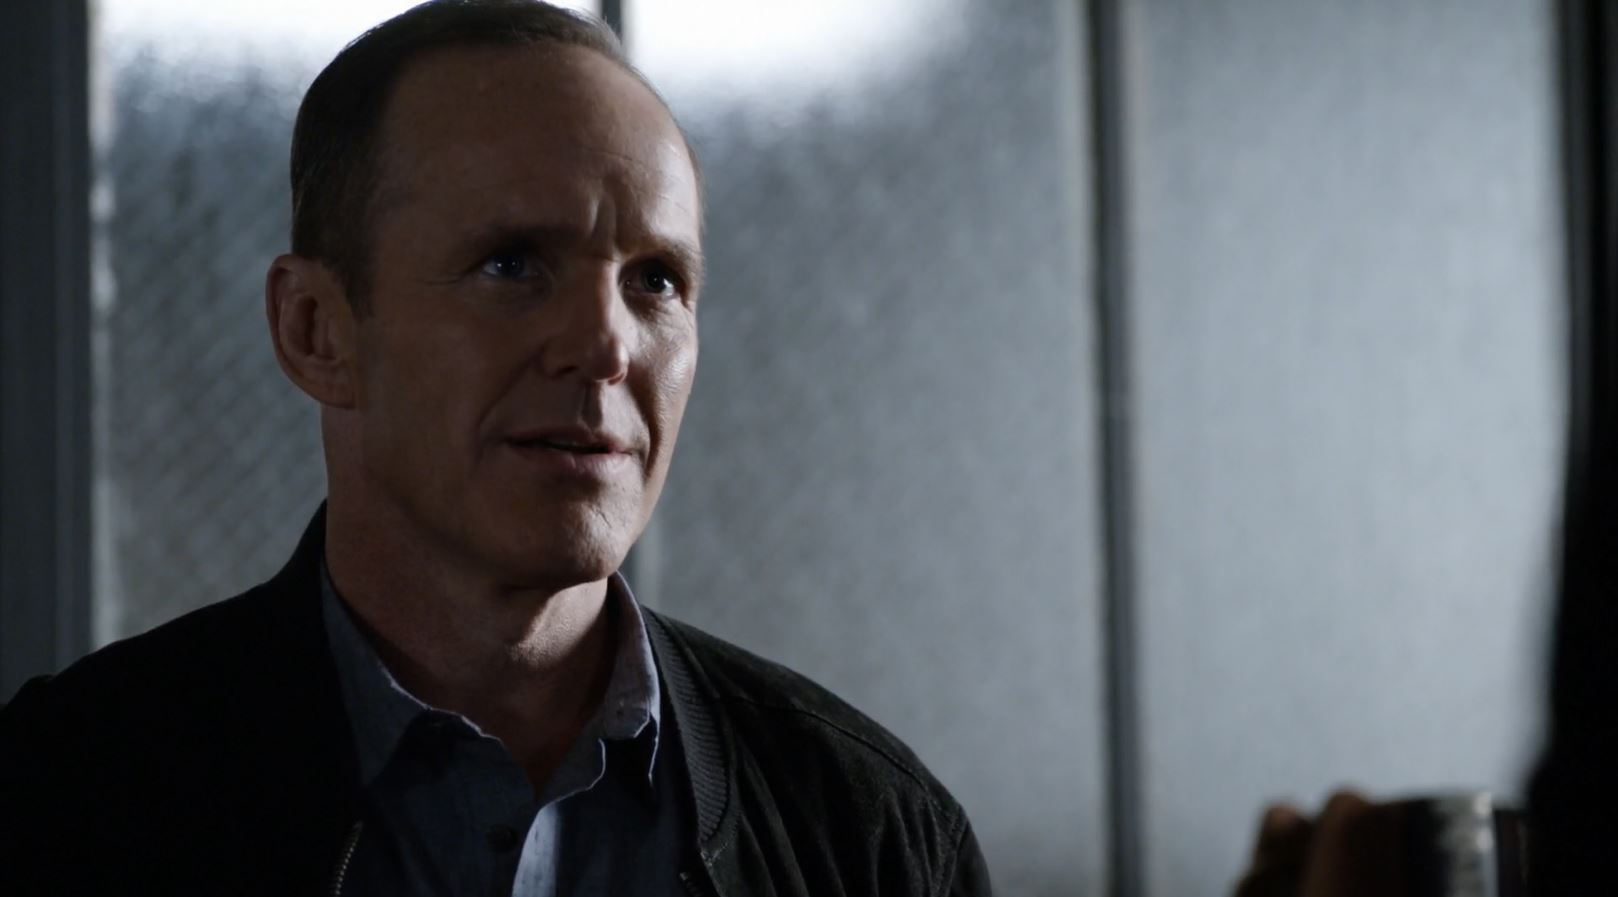 Clark Gregg as Phil Coulson. Agents of SHIELD S3Ep15 Spacetime review.